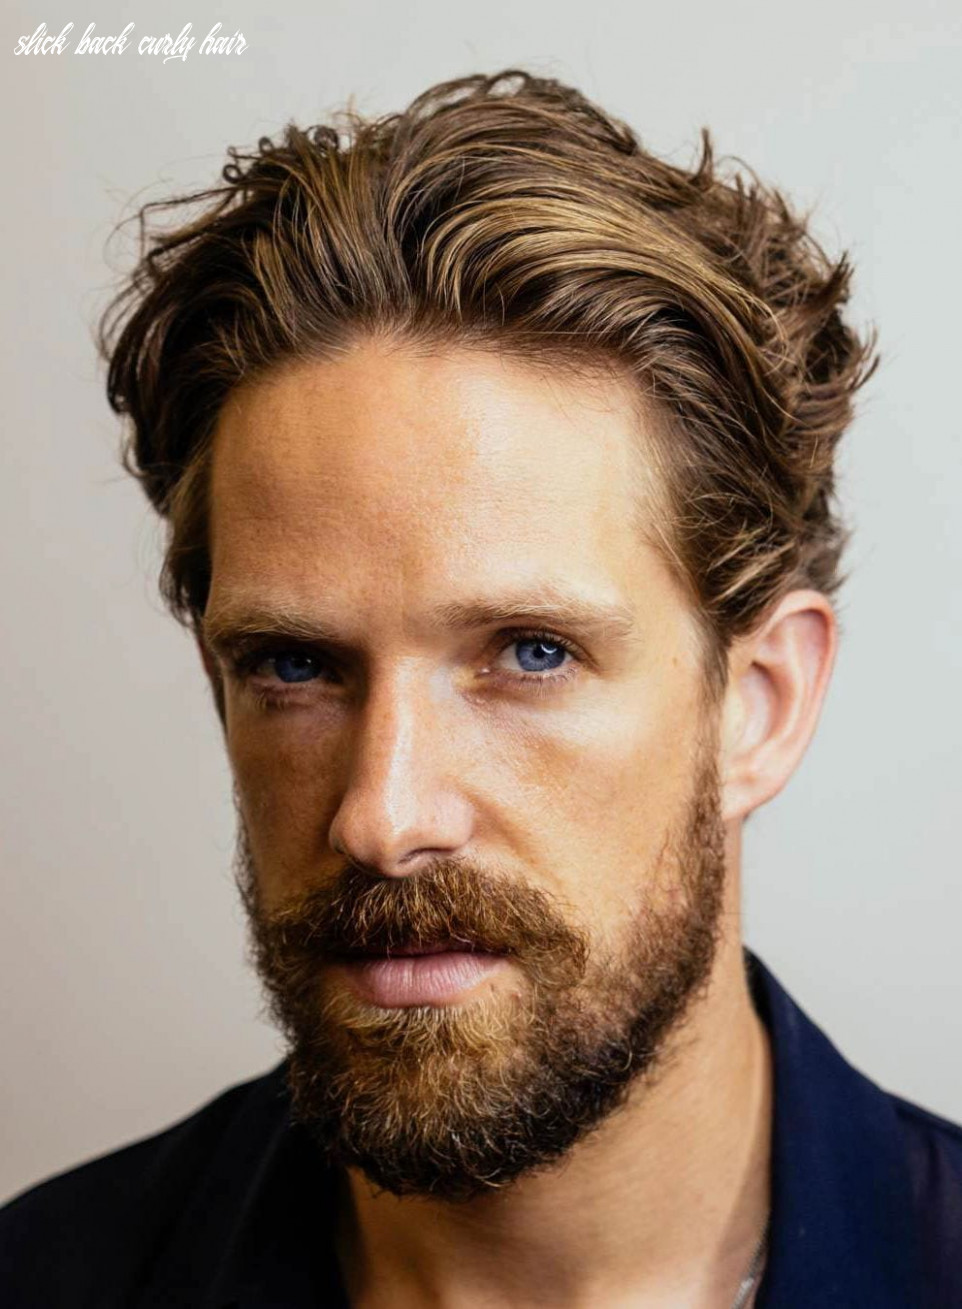 9 slicked back hairstyles: a classy style made simple guide slick back curly hair